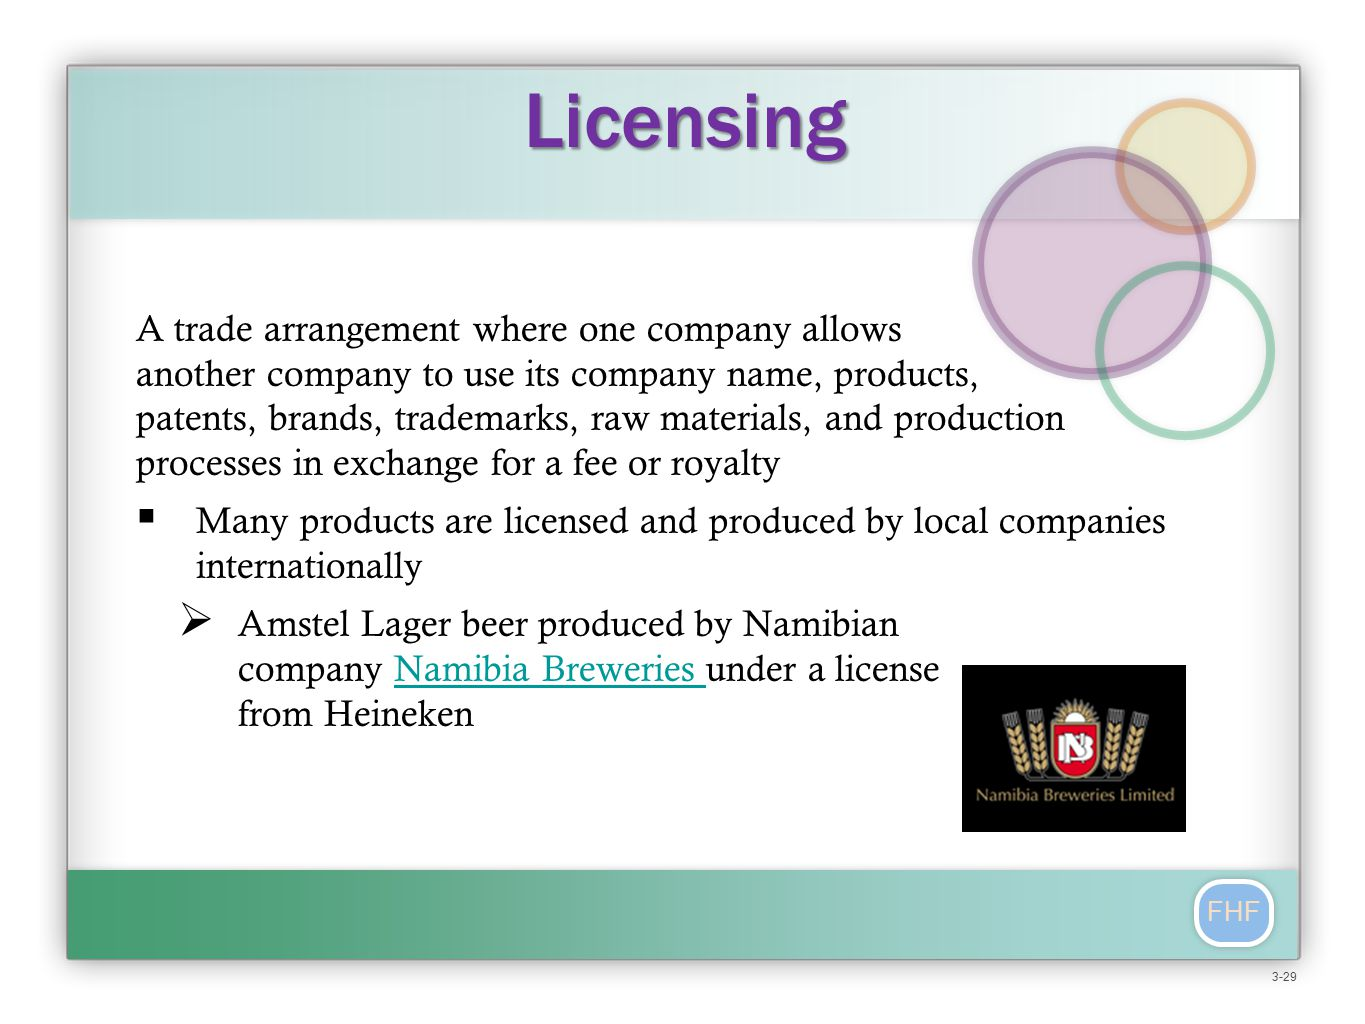 FHF A trade arrangement where one company allows another company to use its company name, products, patents, brands, trademarks, raw materials, and production processes in exchange for a fee or royalty  Many products are licensed and produced by local companies internationally  Amstel Lager beer produced by Namibian company Namibia Breweries under a license from HeinekenNamibia Breweries Licensing 3-29